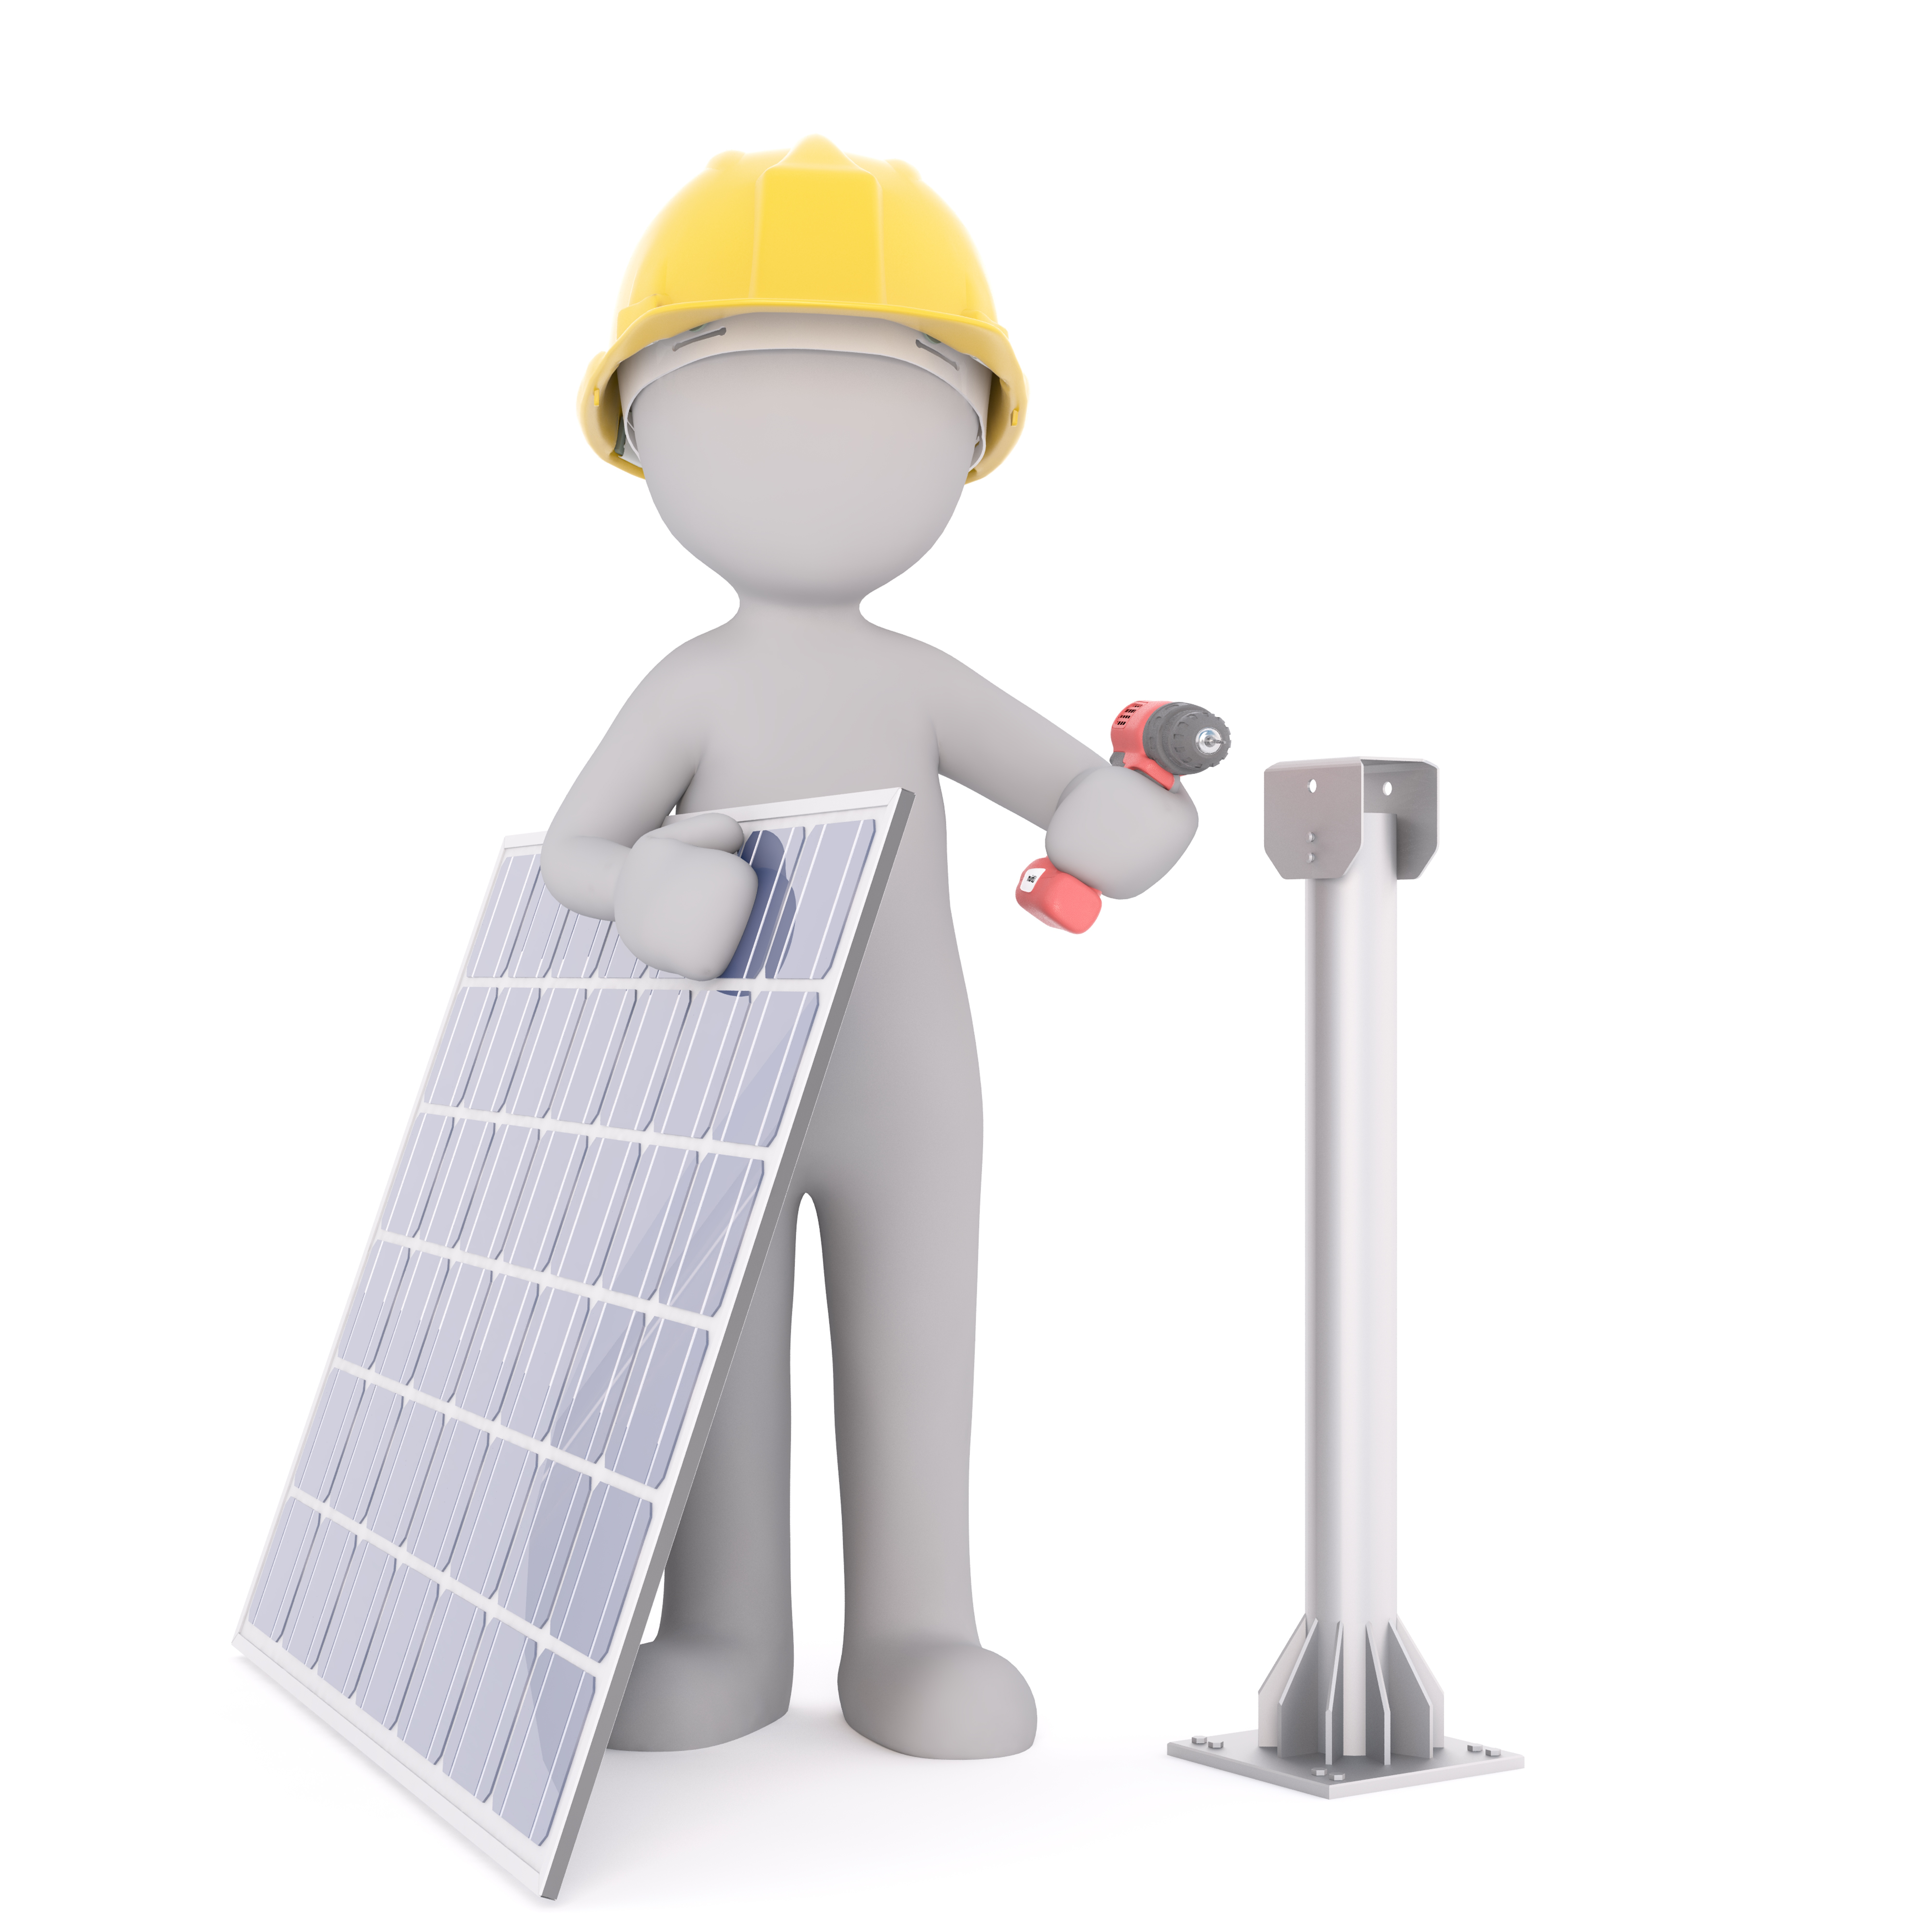 Solar Panel System Installation What You Should Know Our Energy Marine Wiring Make Sure That Get Equipment Is Both Efficient And Durable So It Will Work Well Stand The Test Of Time Last Thing Want To Do